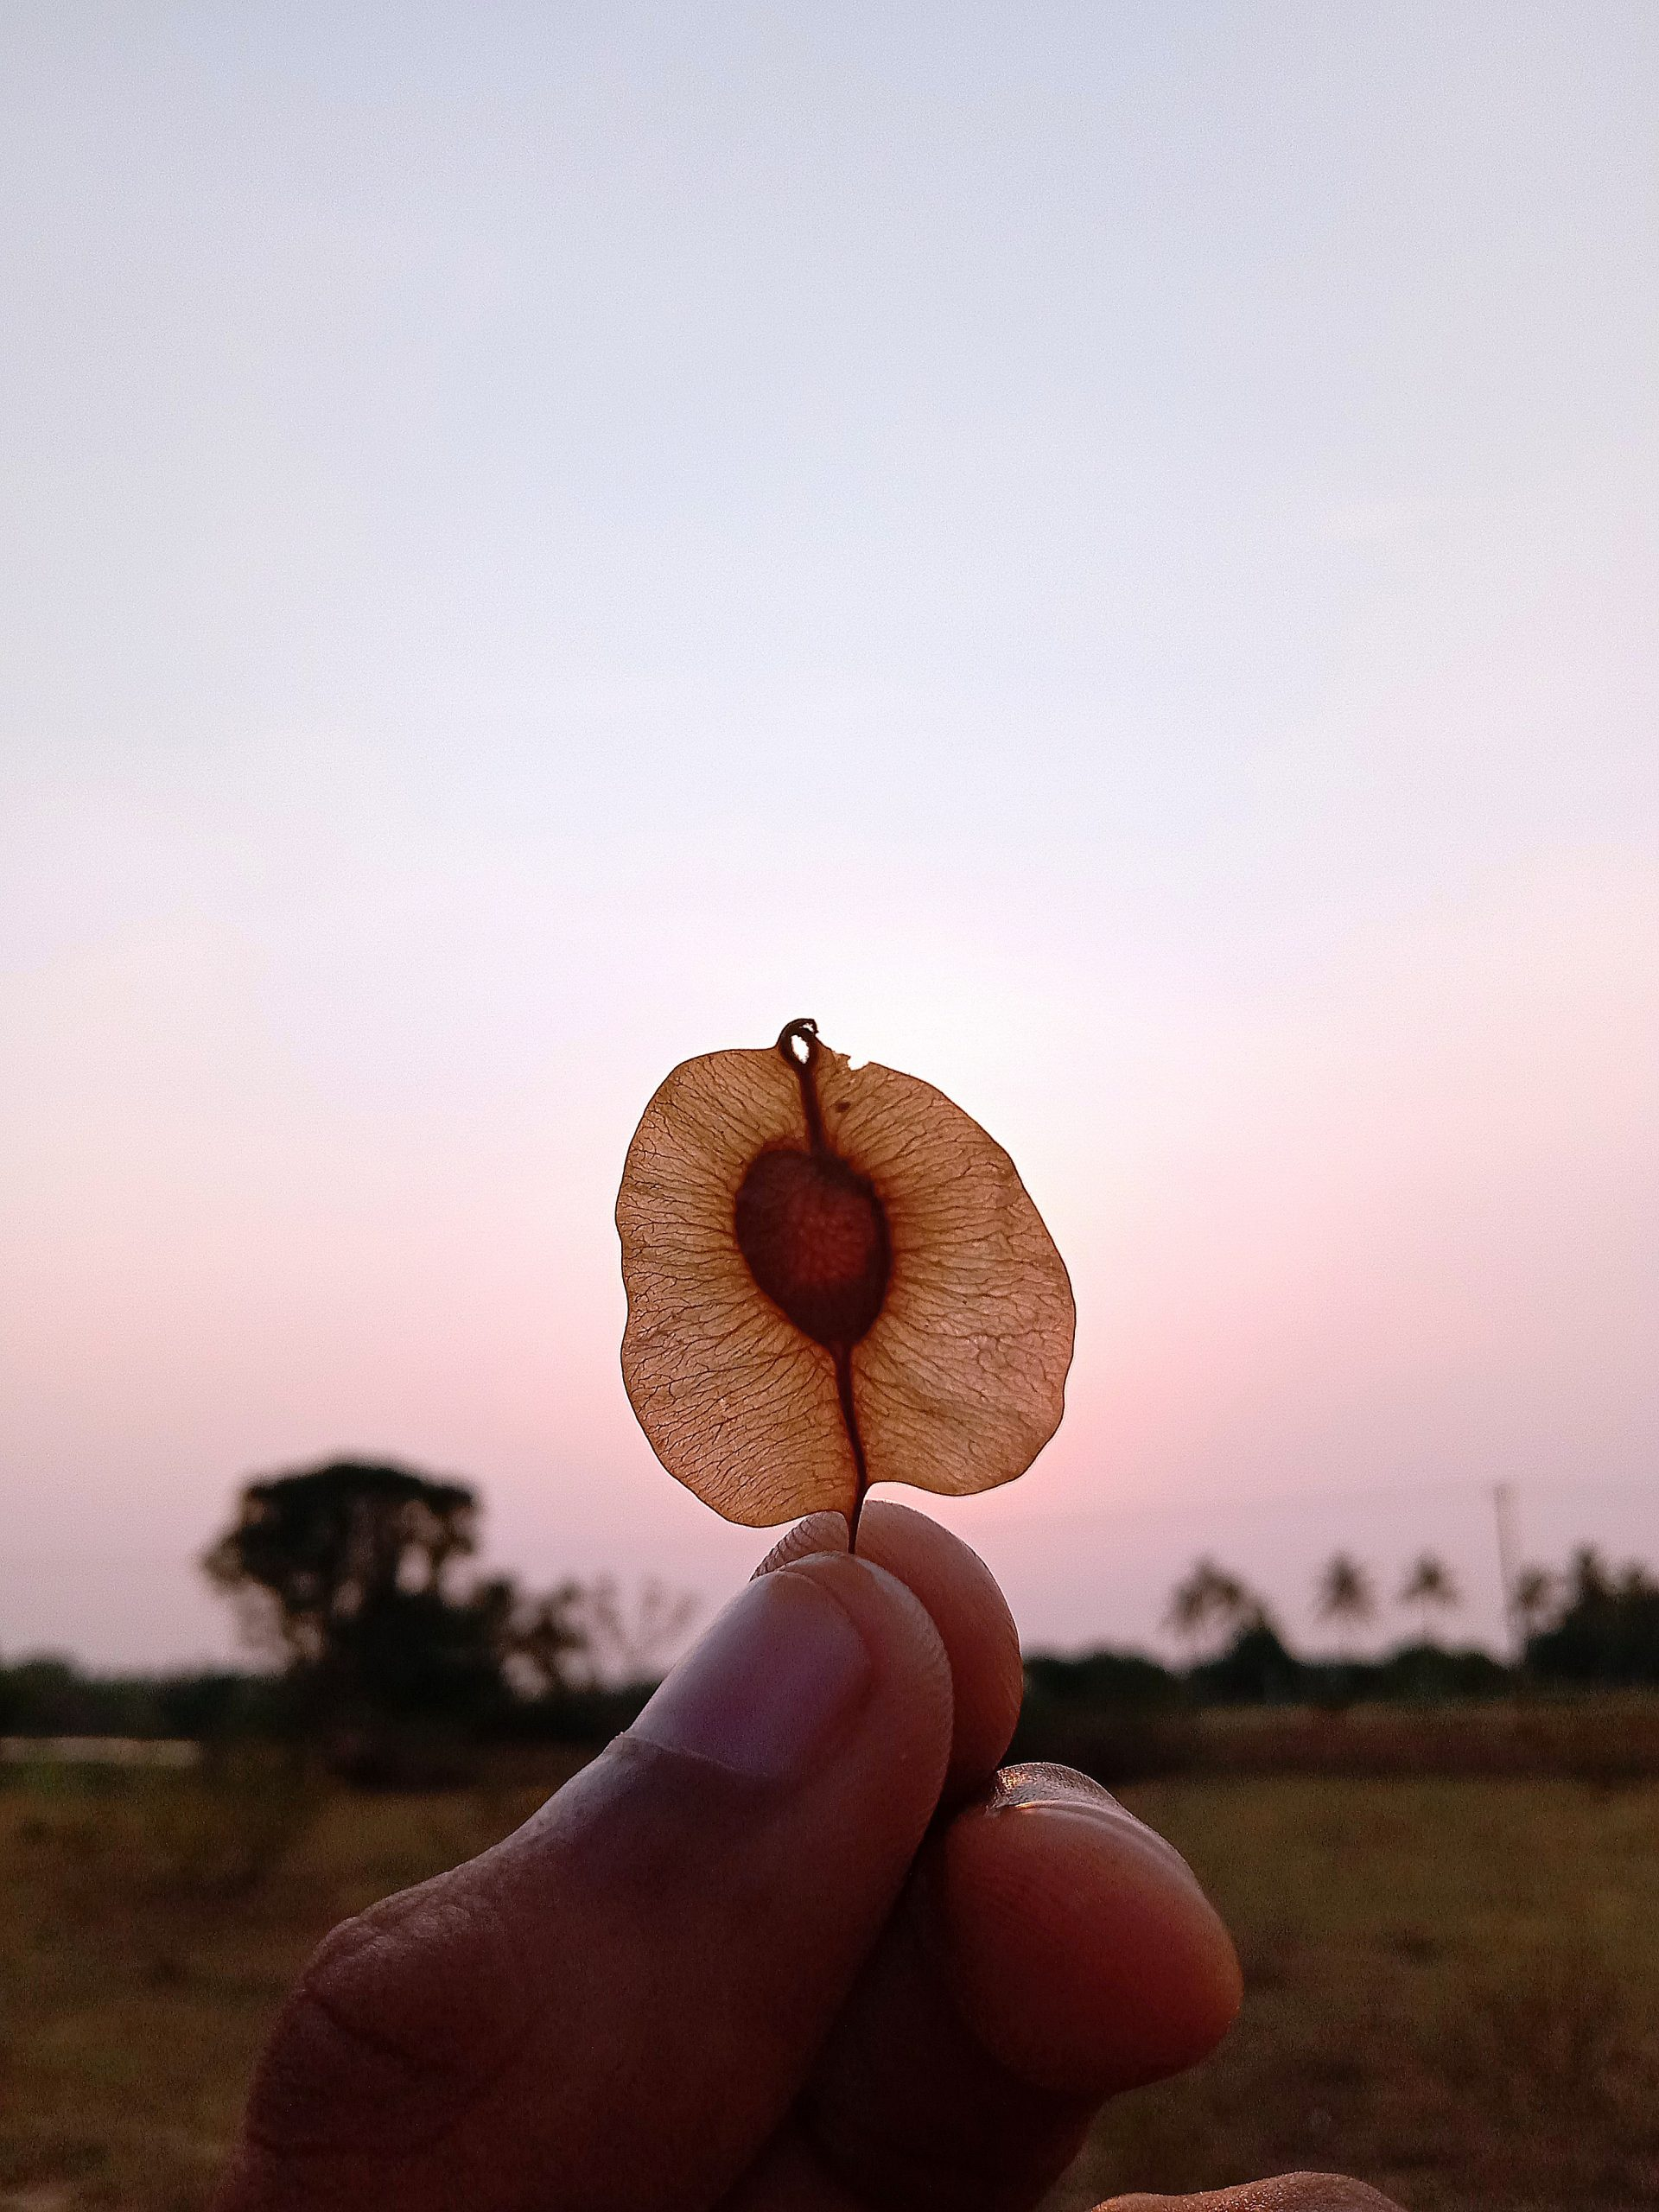 tiny leaf in hand